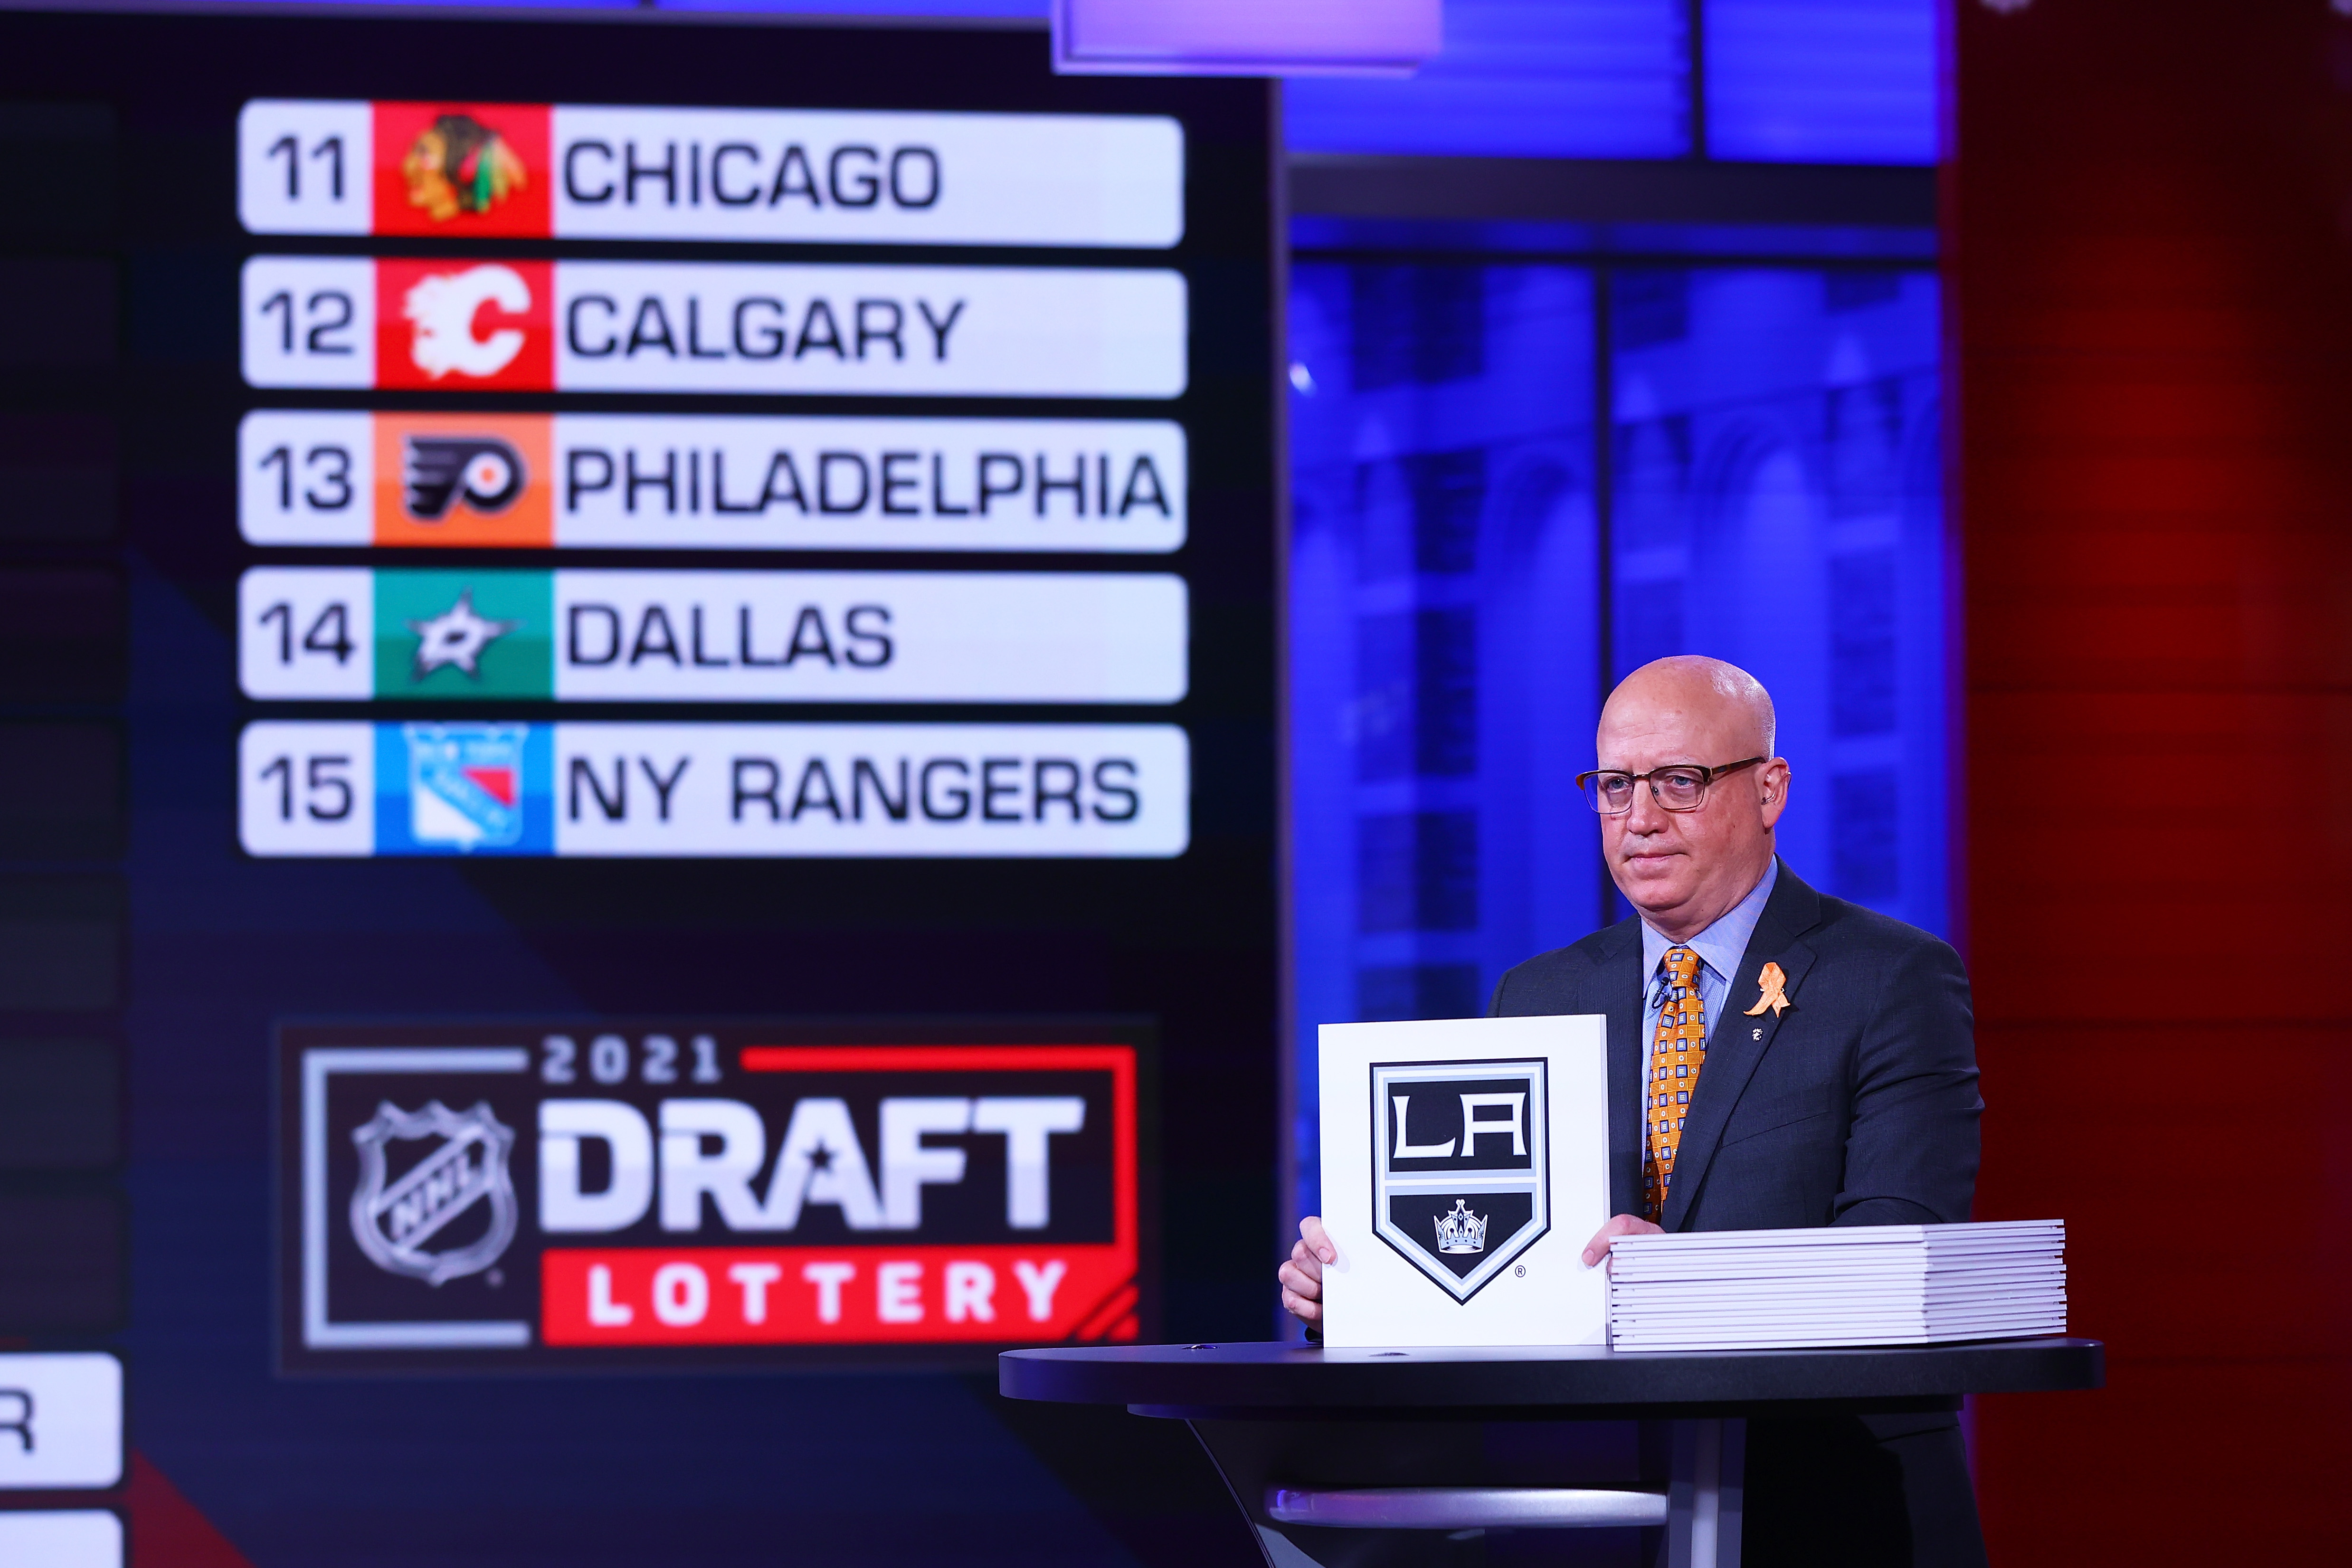 National Hockey League Deputy Commissioner Bill Daly announces an Los Angeles Kings draft position during the 2021 NHL Draft Lottery on June 02, 2021 at the NHL Network's studio in Secaucus, New Jersey.